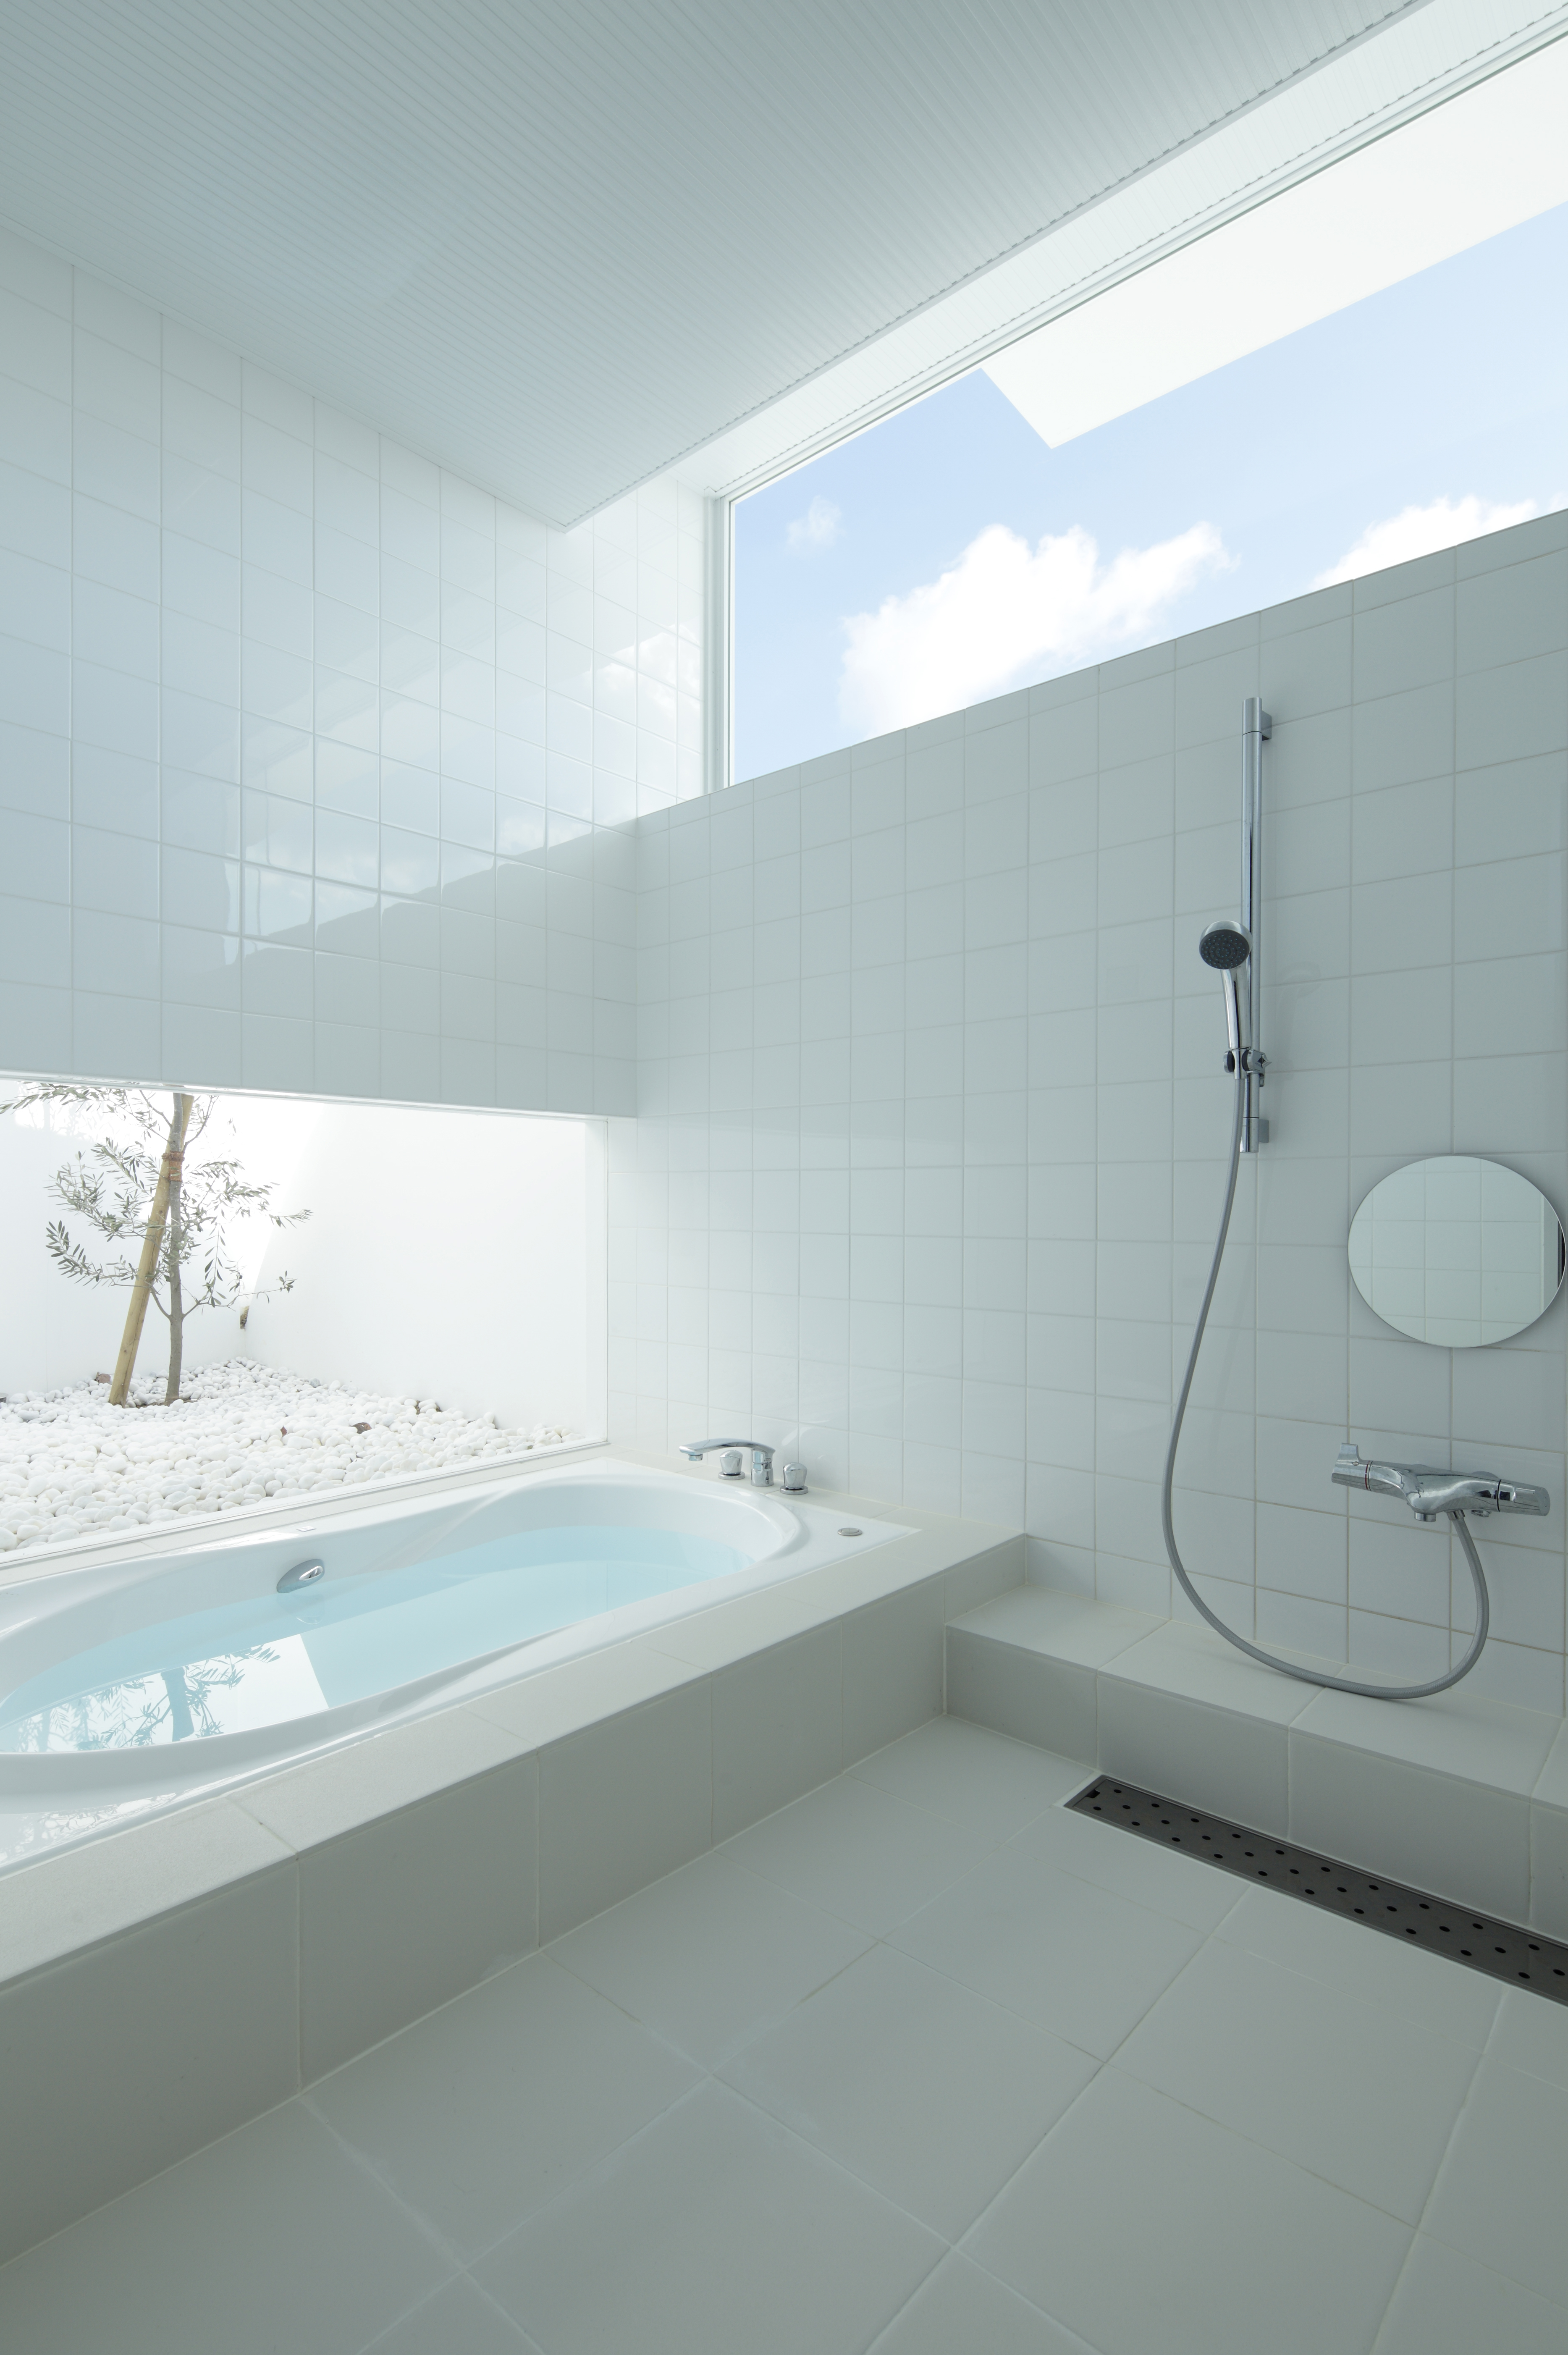 The bathroom is a striking, pristine expanse of white tile and sunlight, with open design shower next to jacuzzi tub, with exterior white rock garden seen through lower window at left.